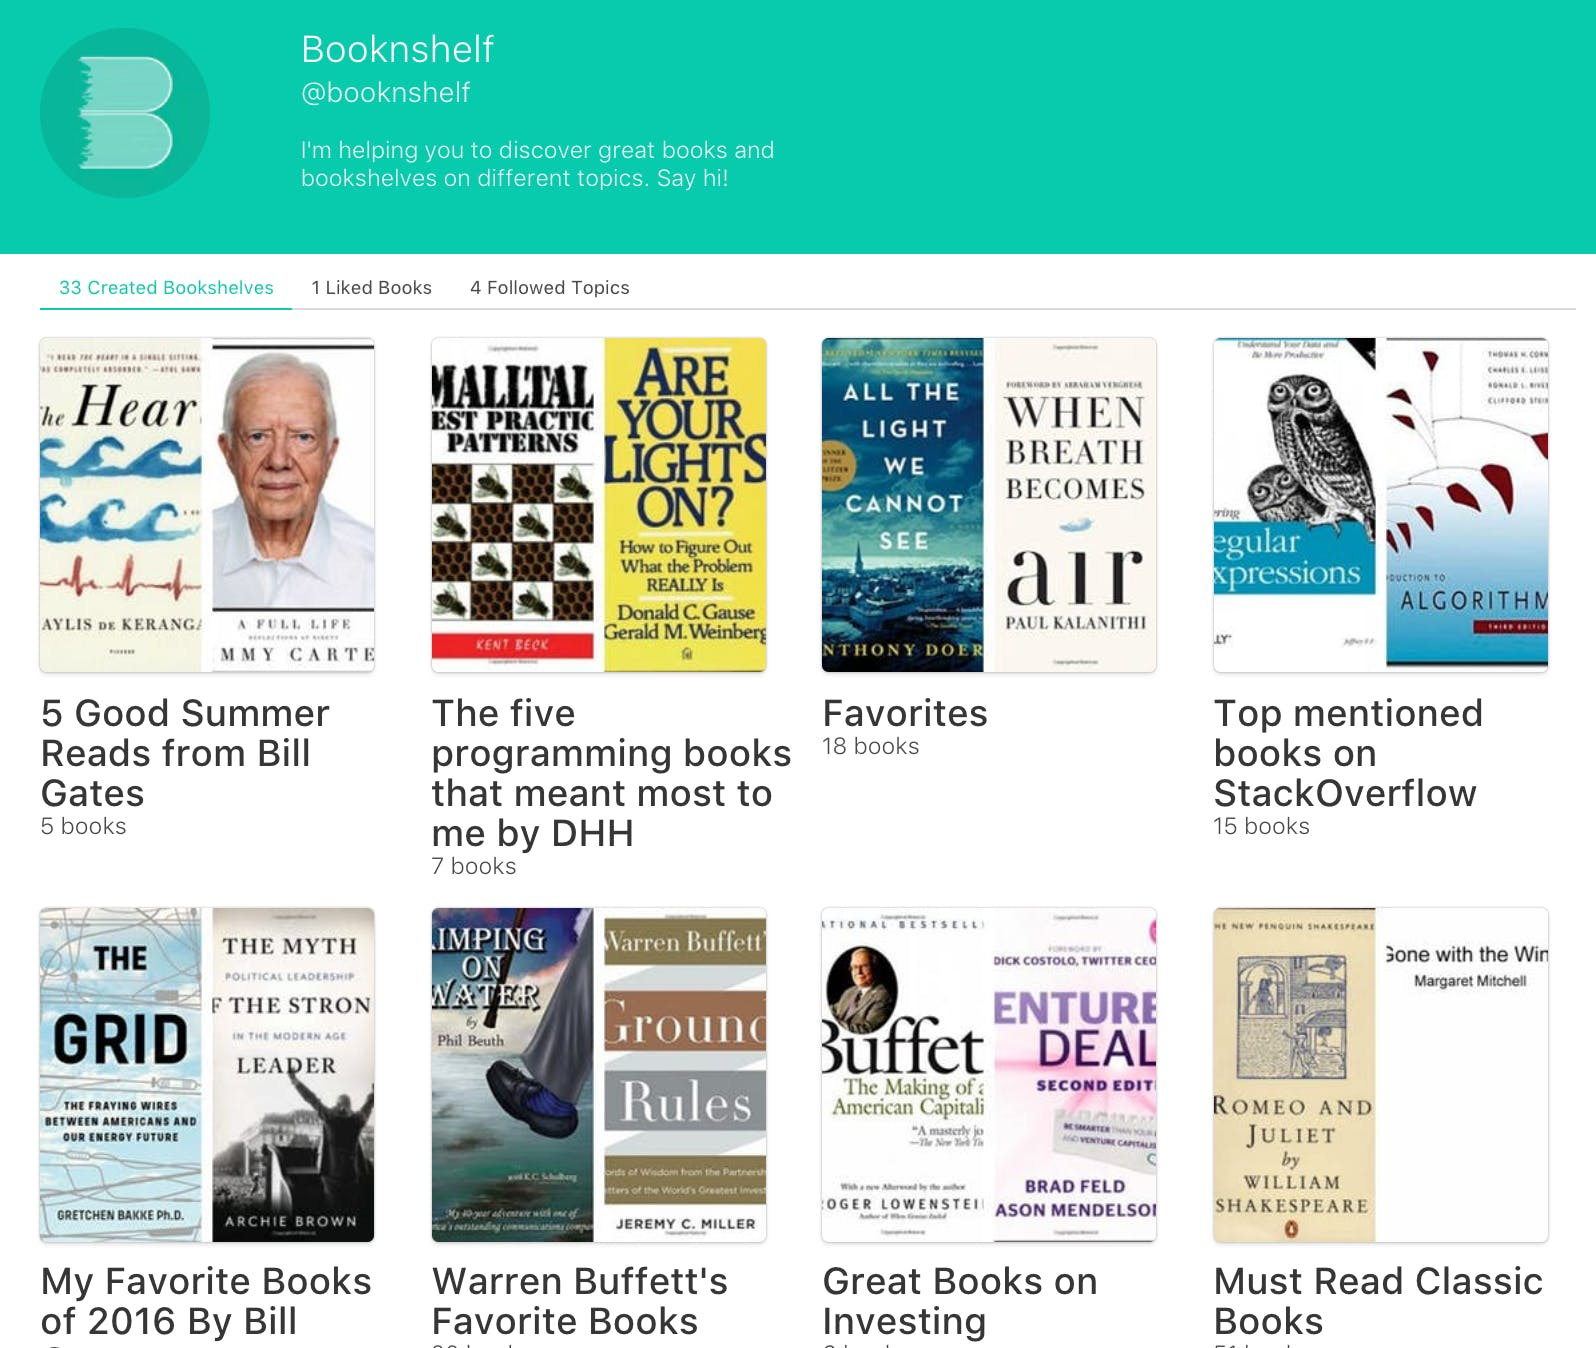 Booknshelf: Keep track of all your books online